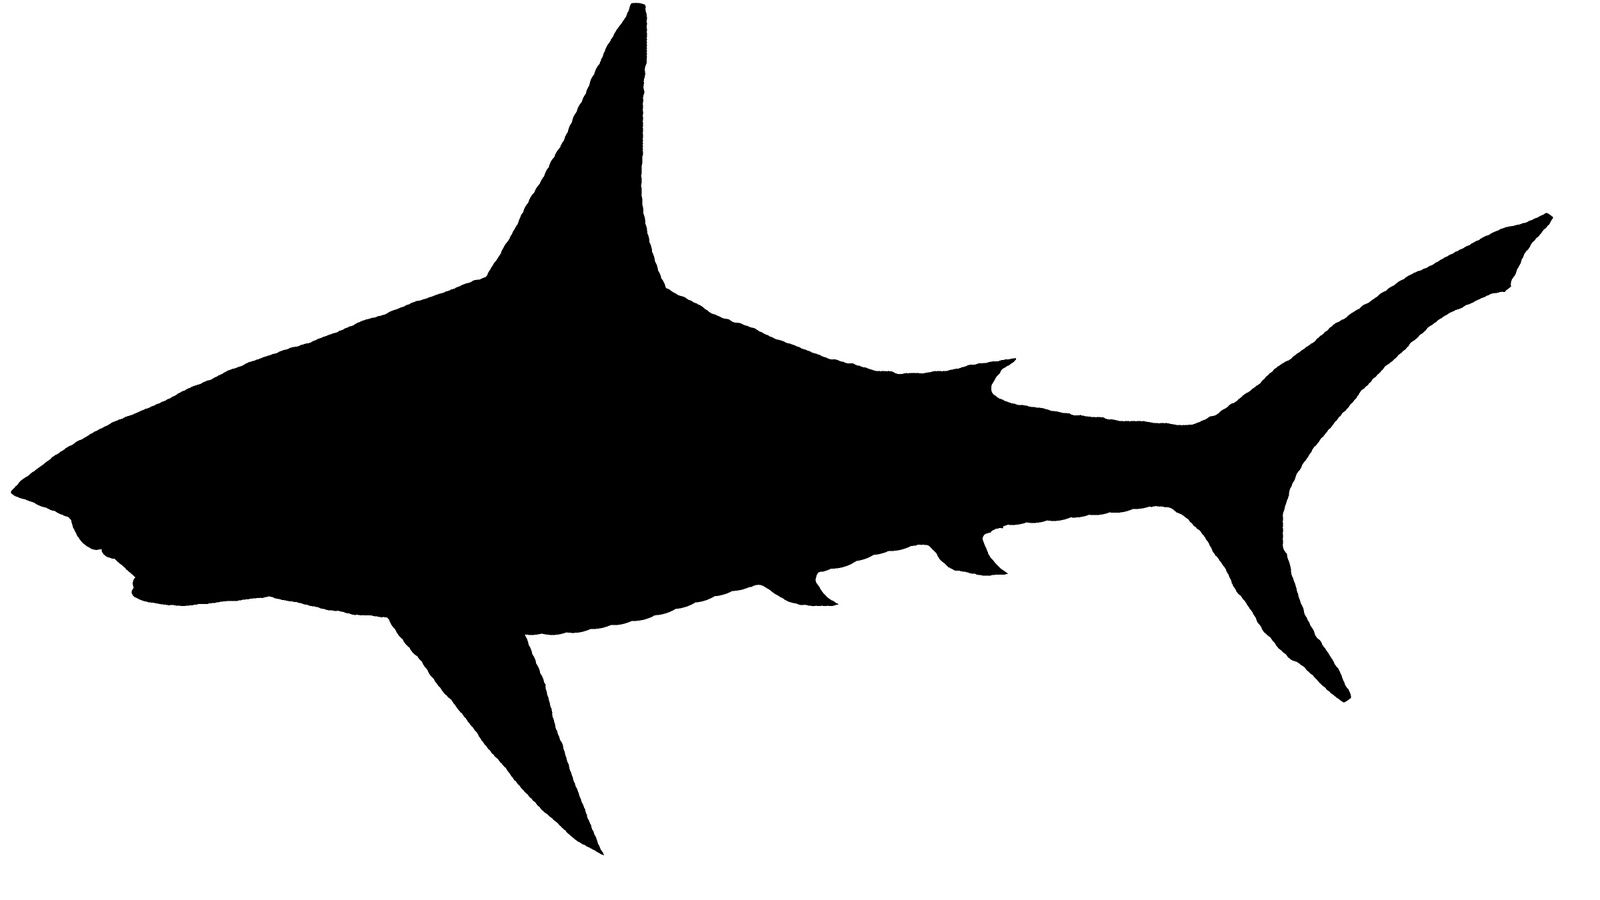 1600x900 Silouettemn Jack's Party Shark, Silhouettes